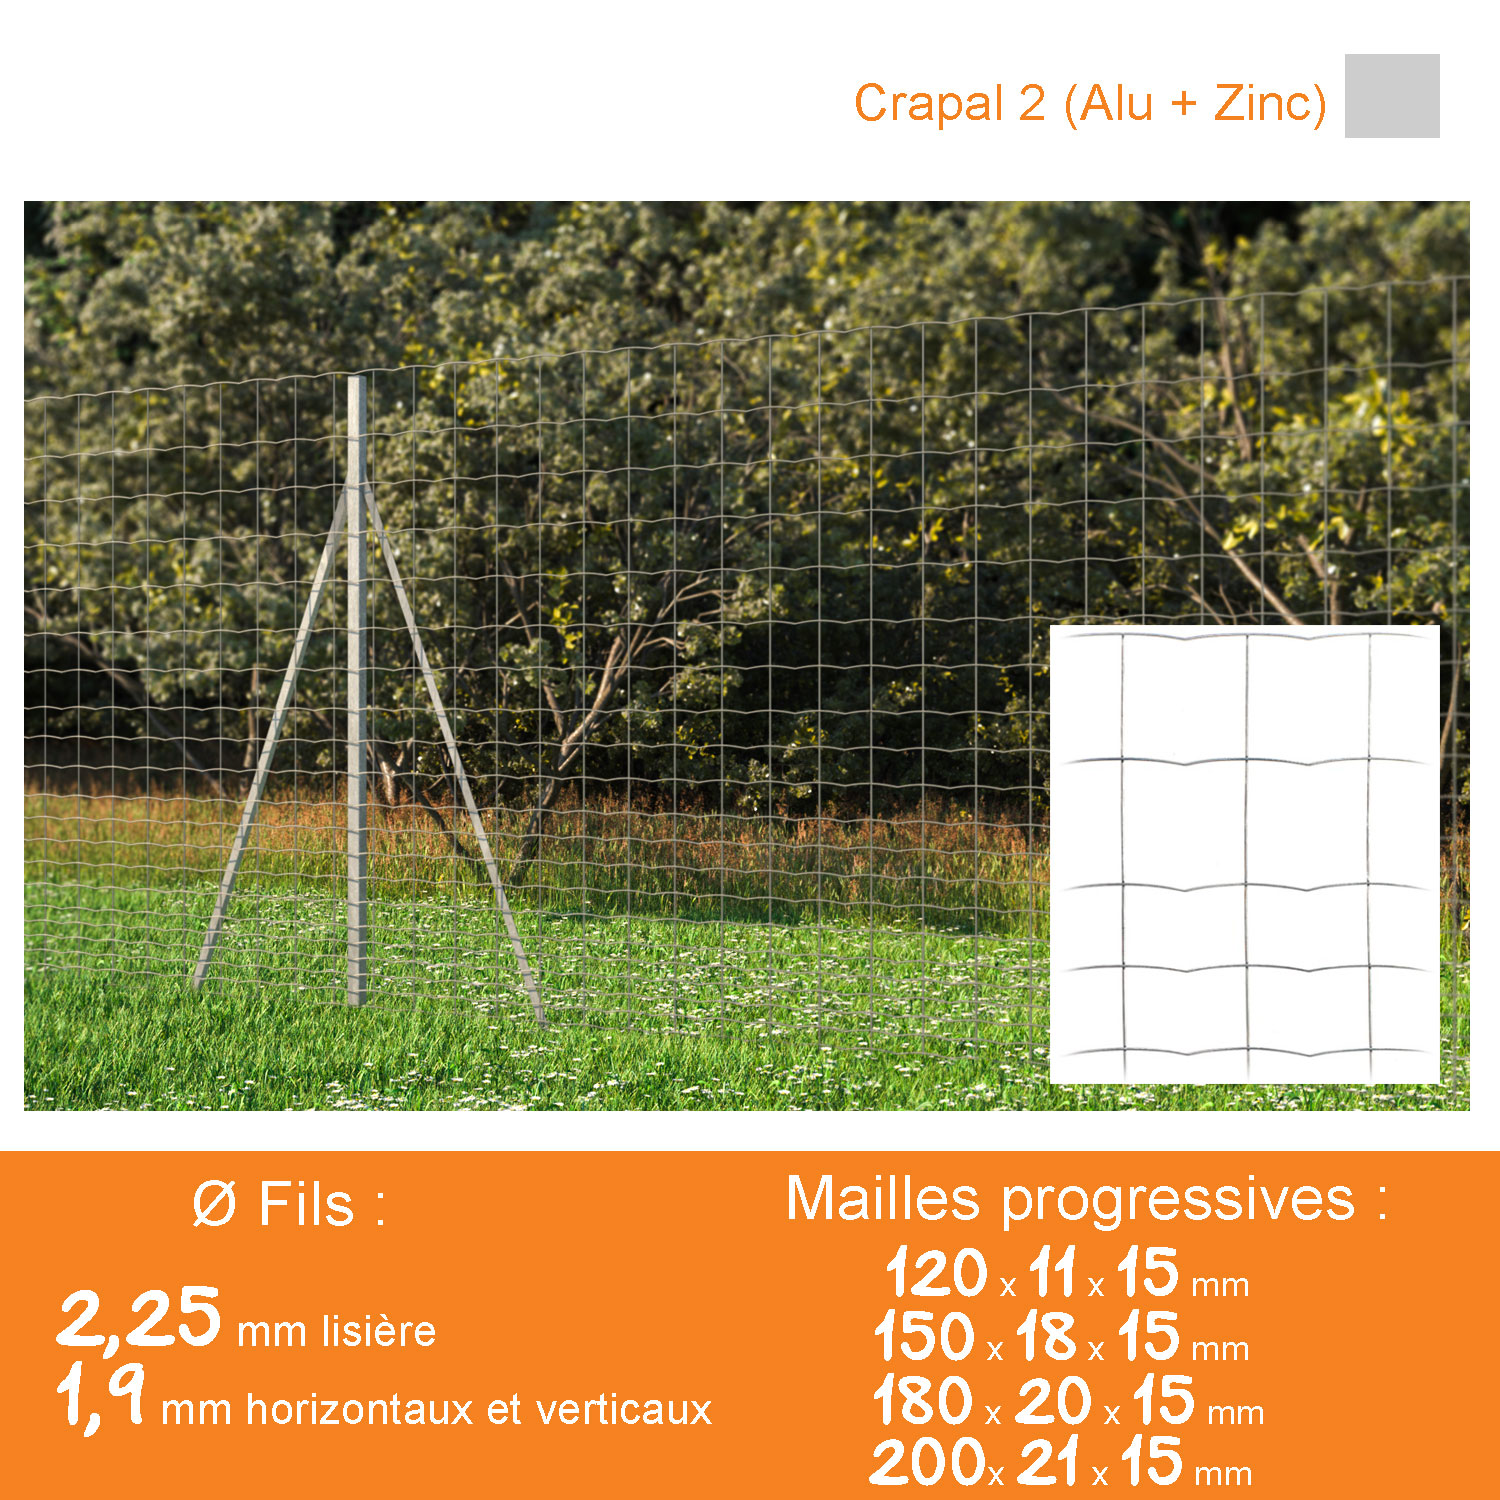 Grillage soudé ATAK MEDIUM Mailles progressives 120 x 11 x 15 mm - Crapal Ø 2,25 - 1,9 mm - Lg. 50 m